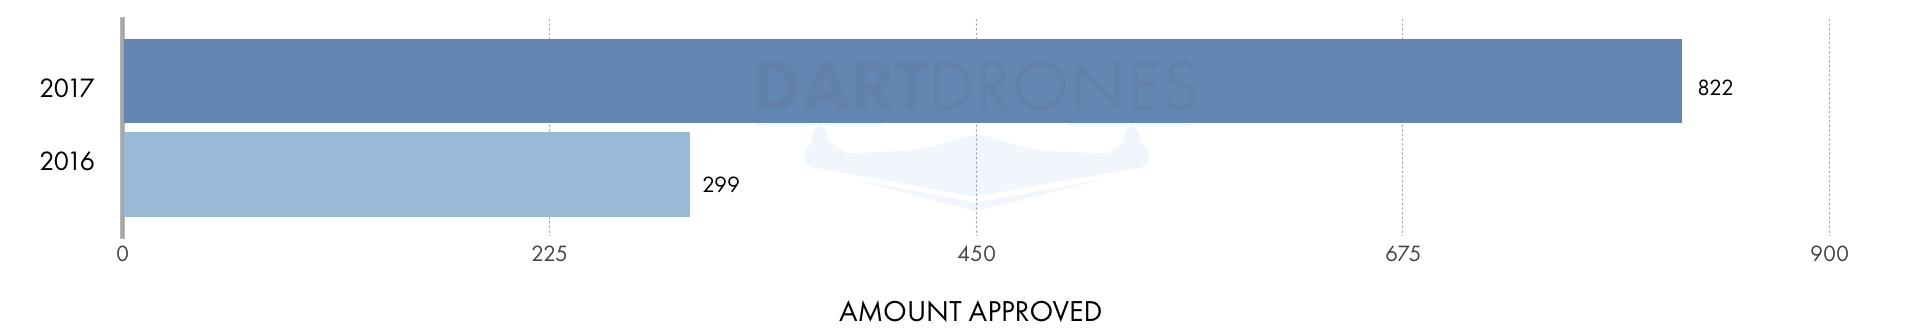 Drone waivers approved.